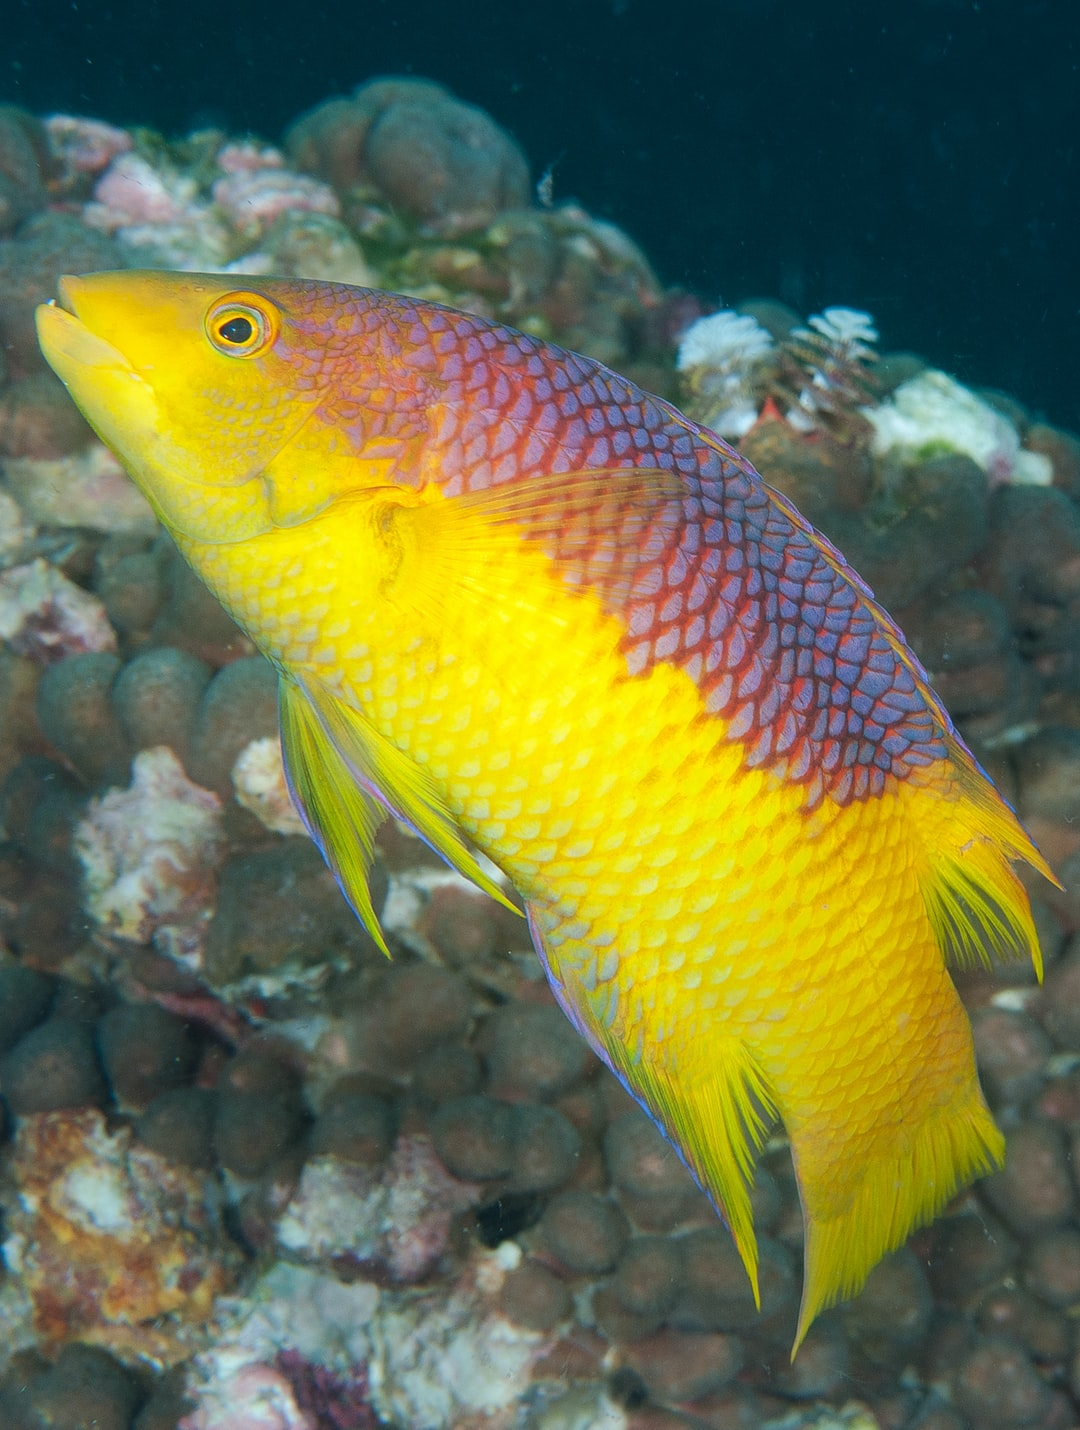 Side view of a Spanish hogfish.